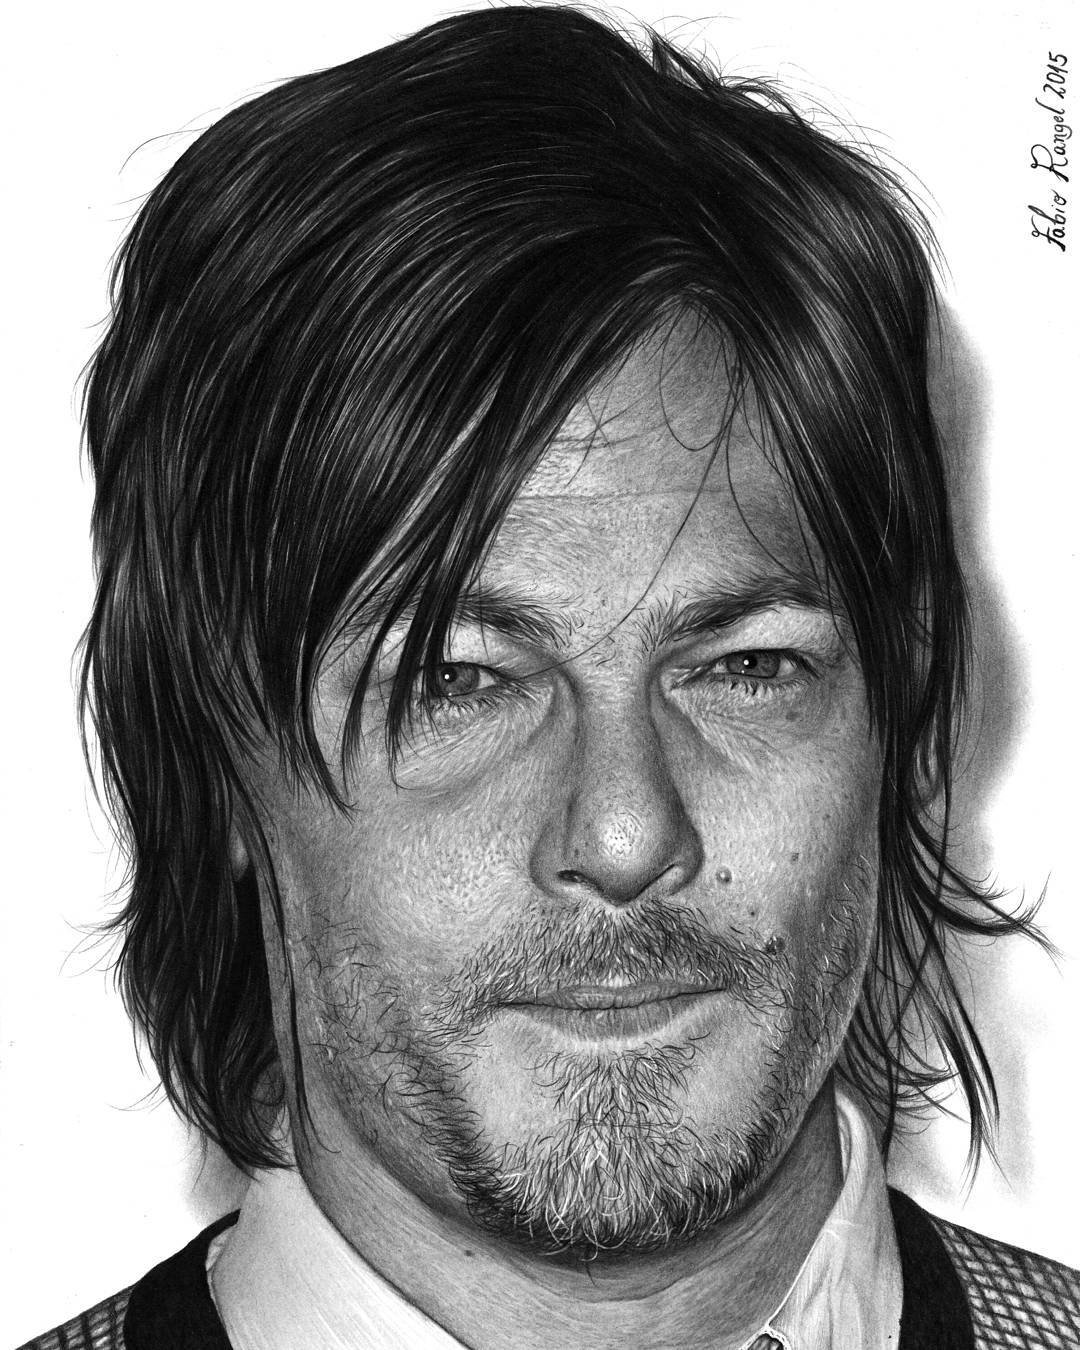 04-Daryl-Dixon-The-Walking-Dead-Fabio-Rangel-Drawings-of-Protagonists-from-TV-and-Movies-www-designstack-co